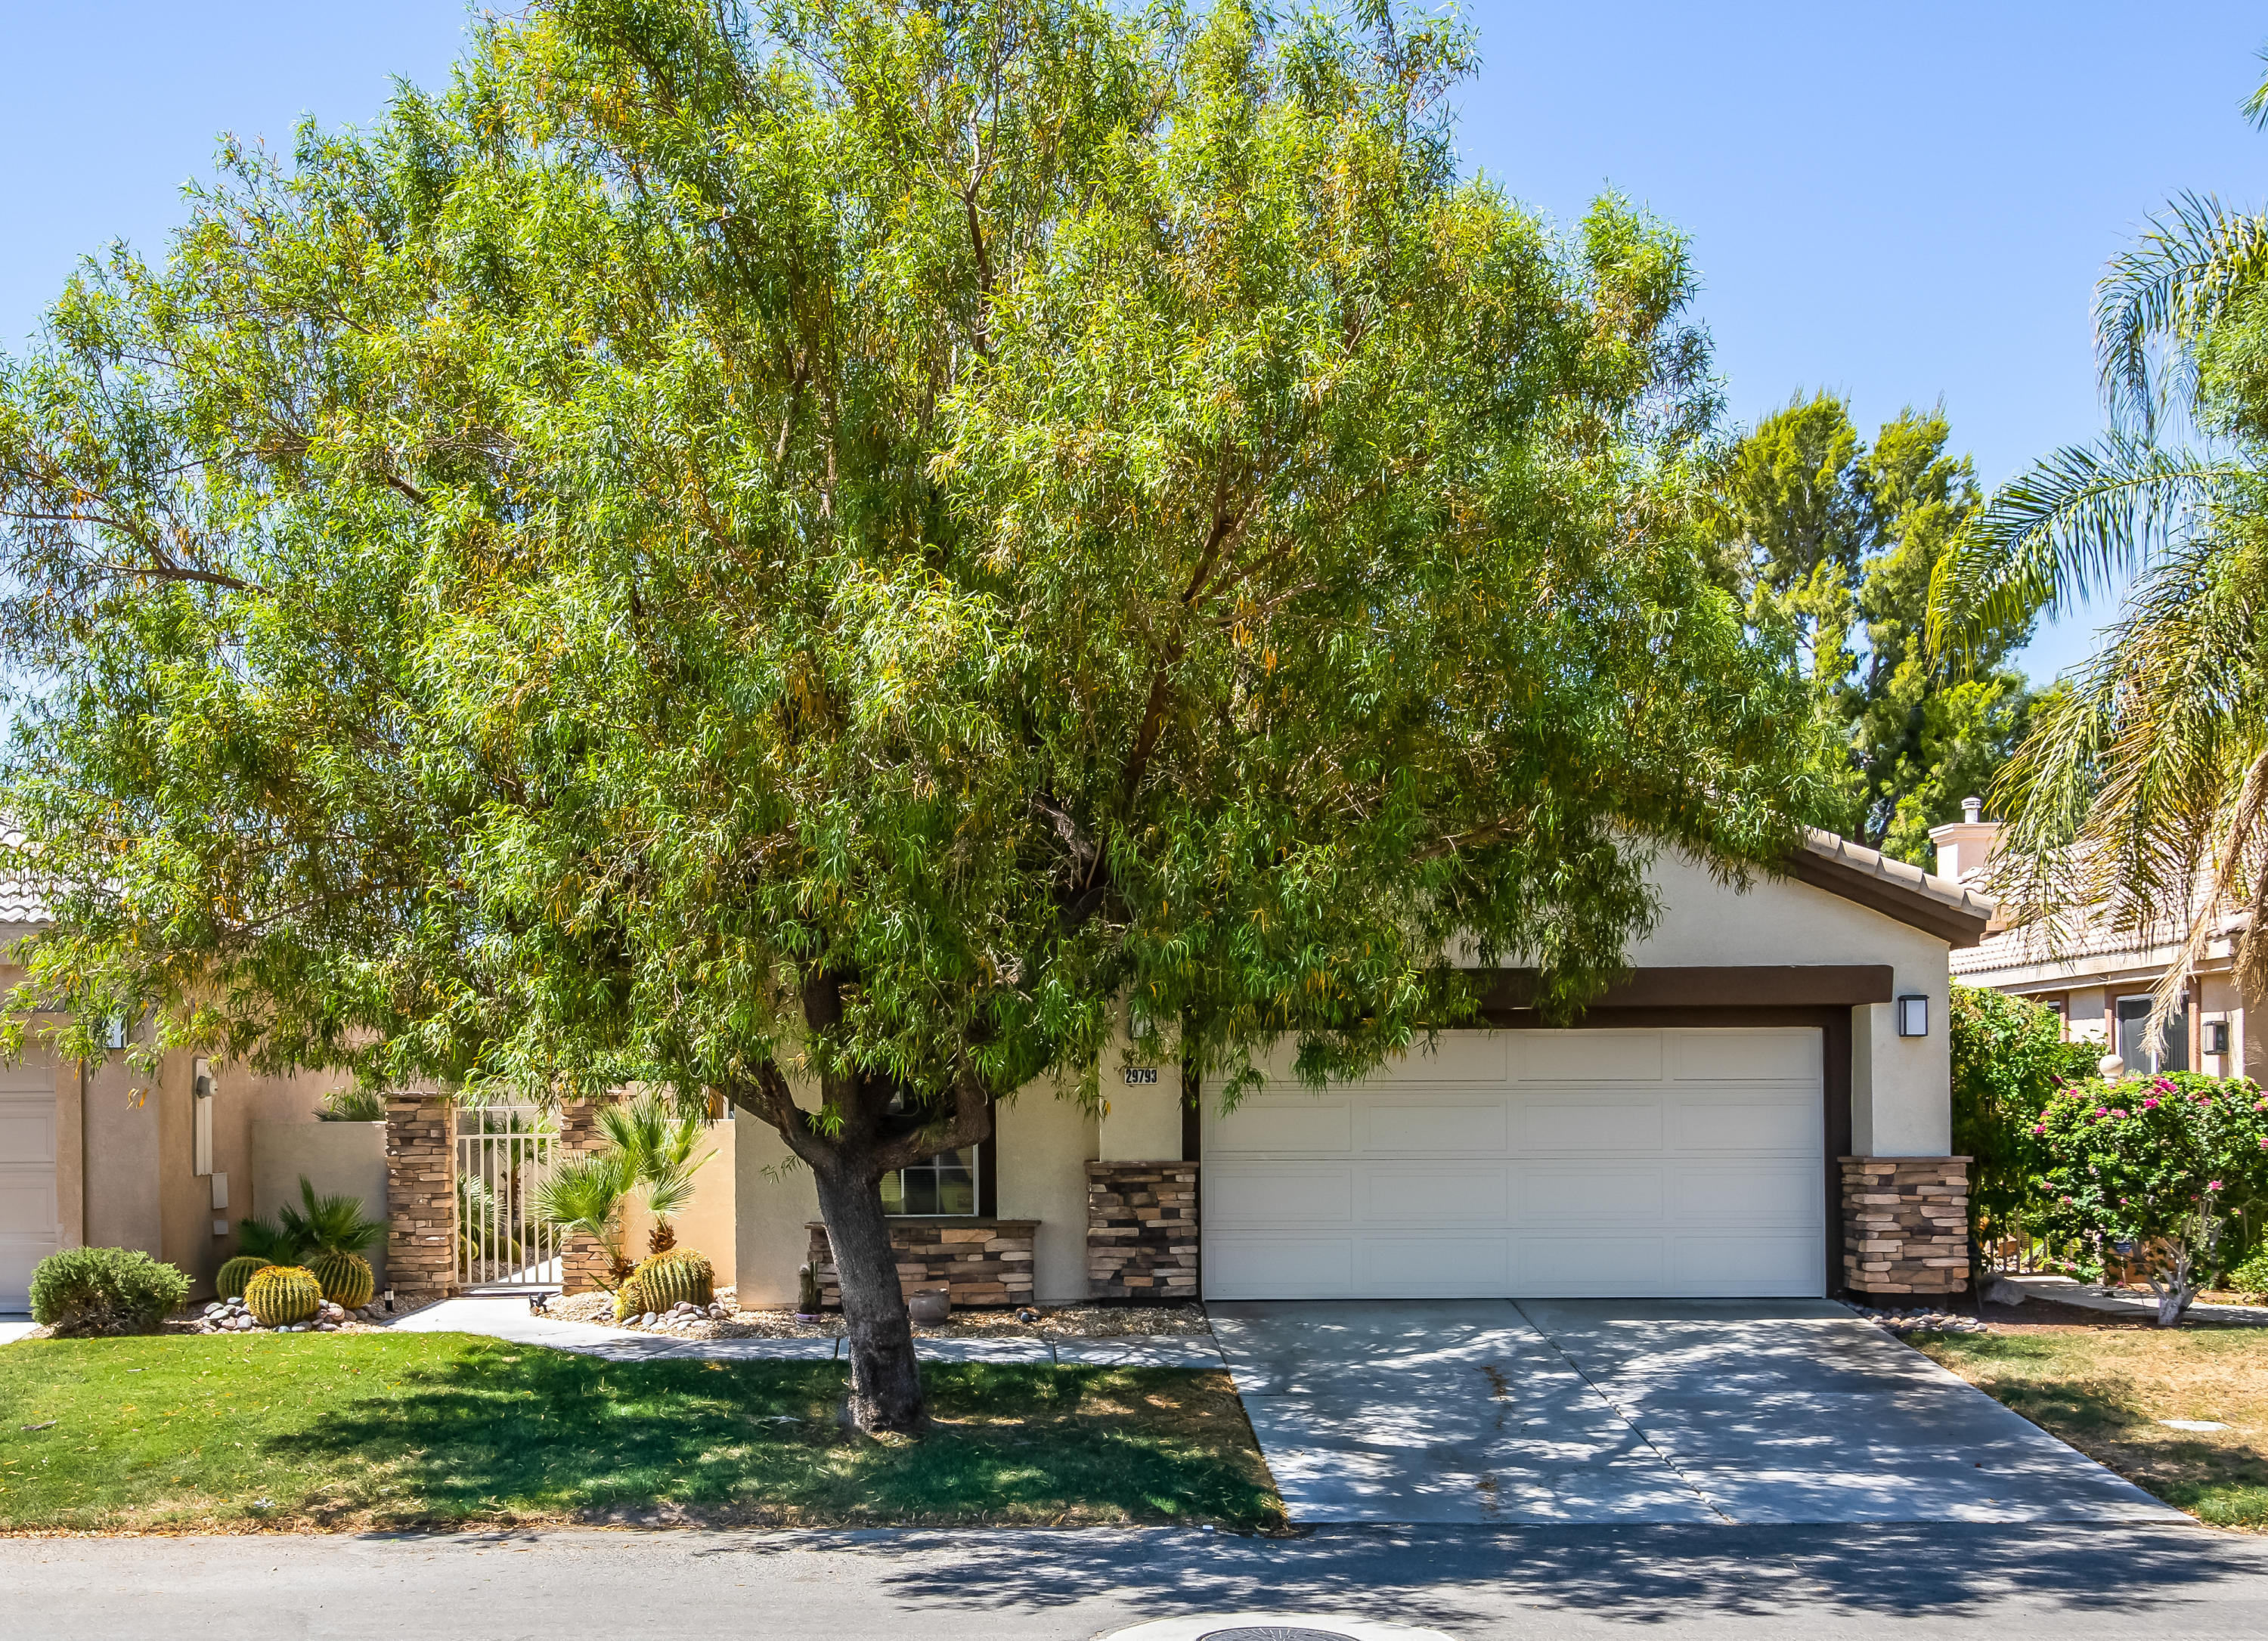 29793 W Laguna Drive, Cathedral City, California 92234, 2 Bedrooms Bedrooms, ,3 BathroomsBathrooms,Residential,For Sale,29793 W Laguna Drive,219044036